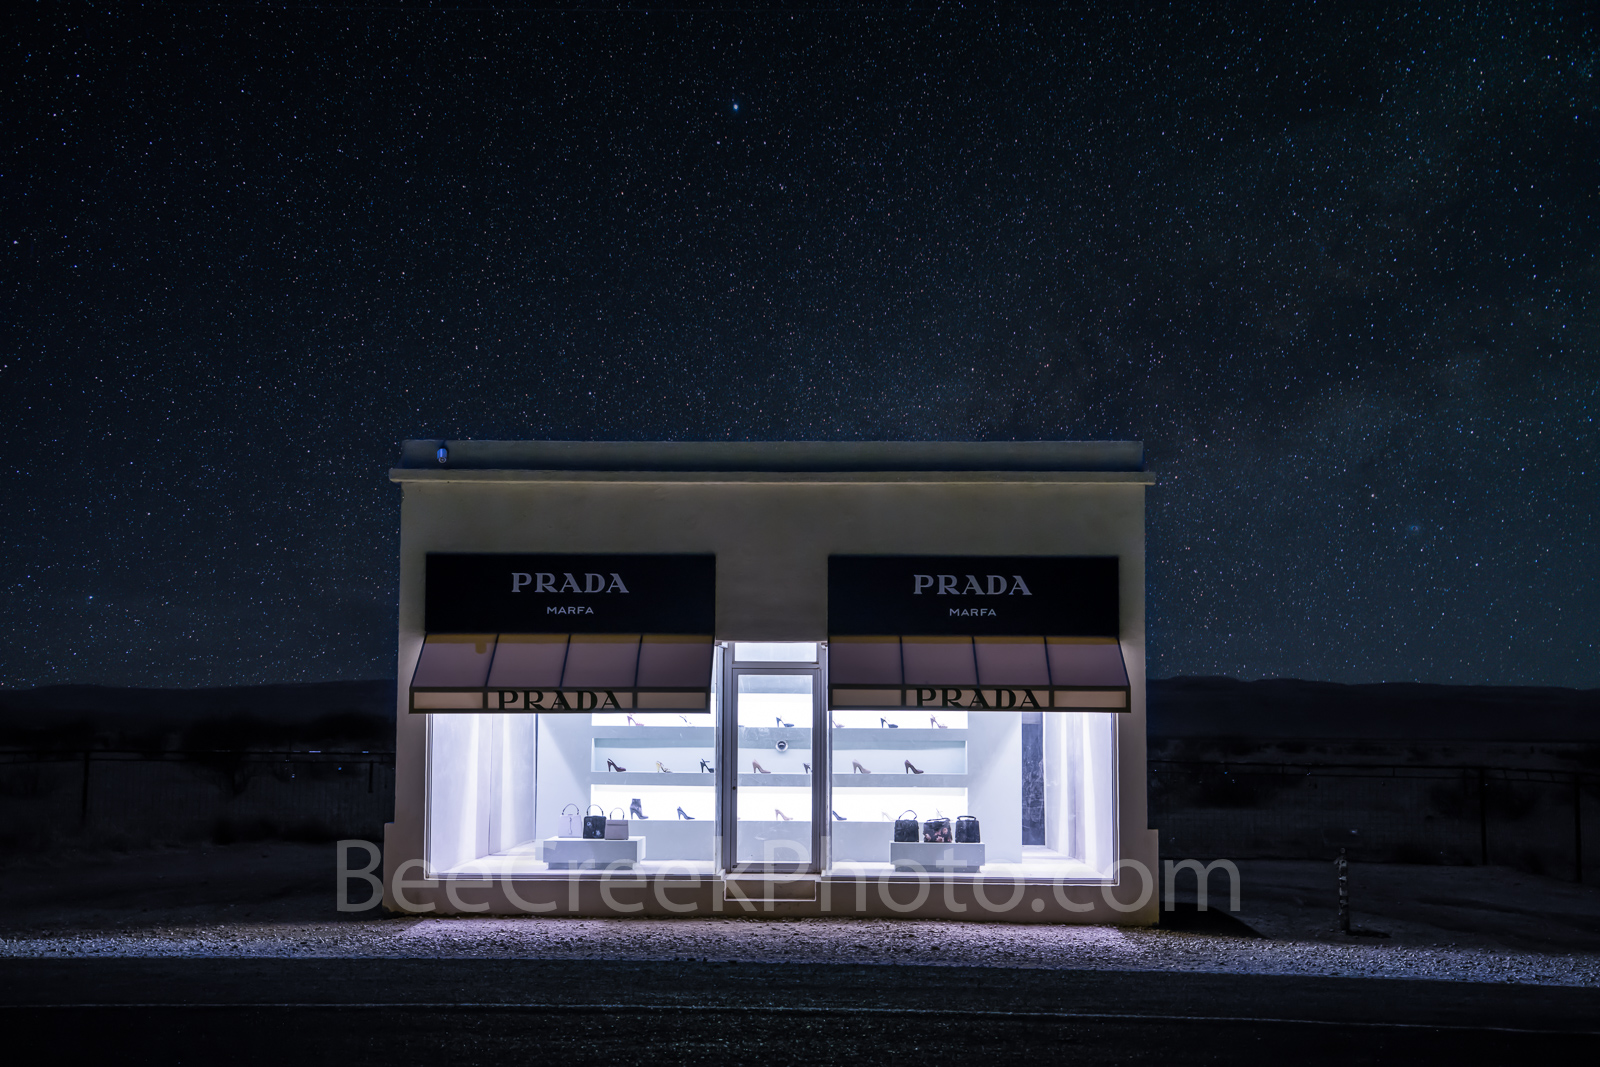 Prada Marfa, stars, night, dark, Marfa lights, west texas, starry, night skies, pop art, artist, Elmgreen and Dragset, pop architectural land art, shoes, purses, store front, west texas landscape, , photo